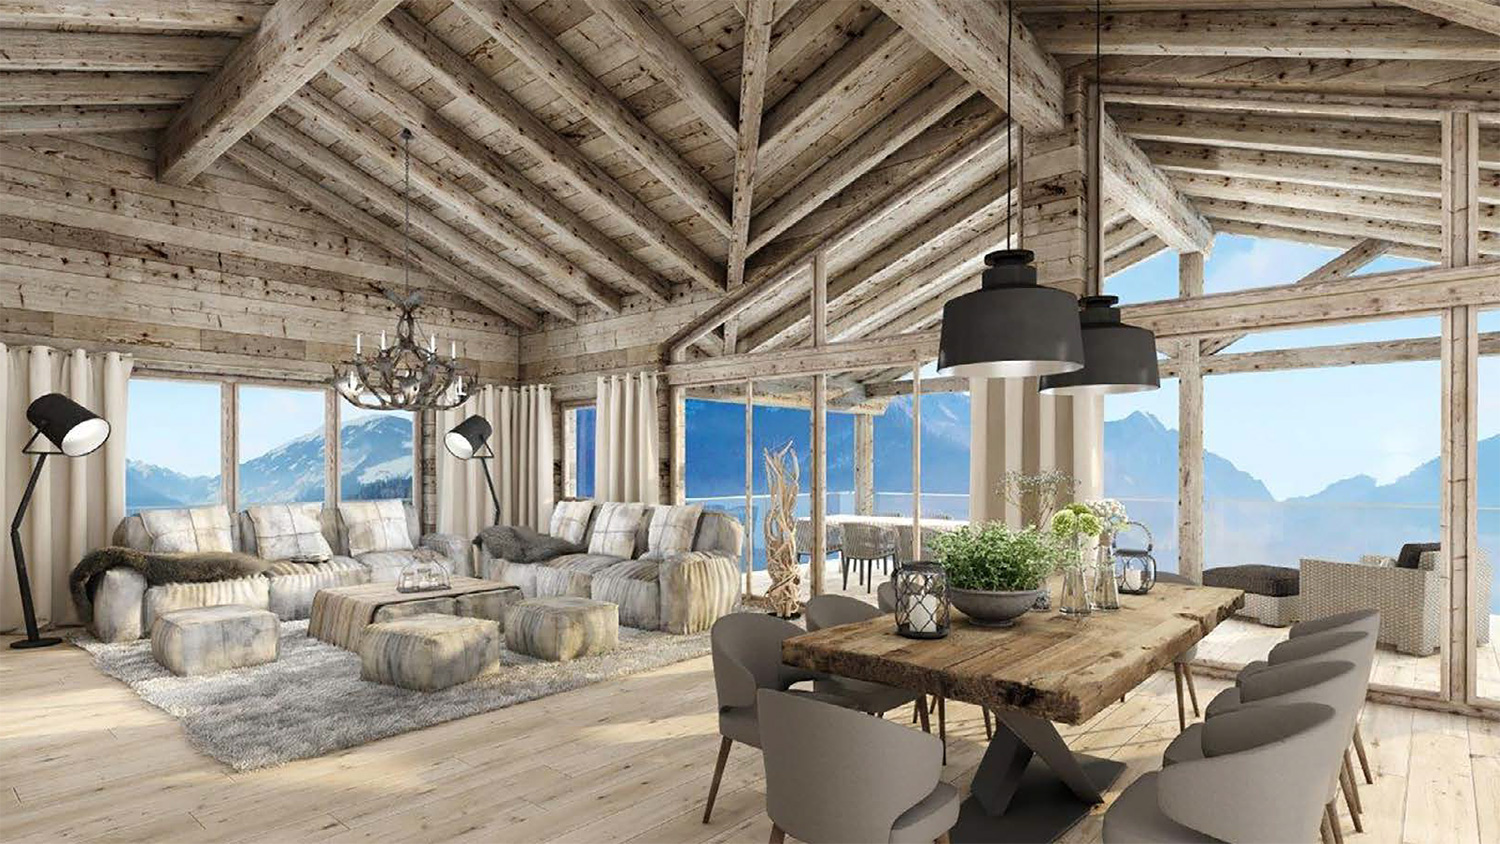 Hunting Lodge Residences Chalet, Austria